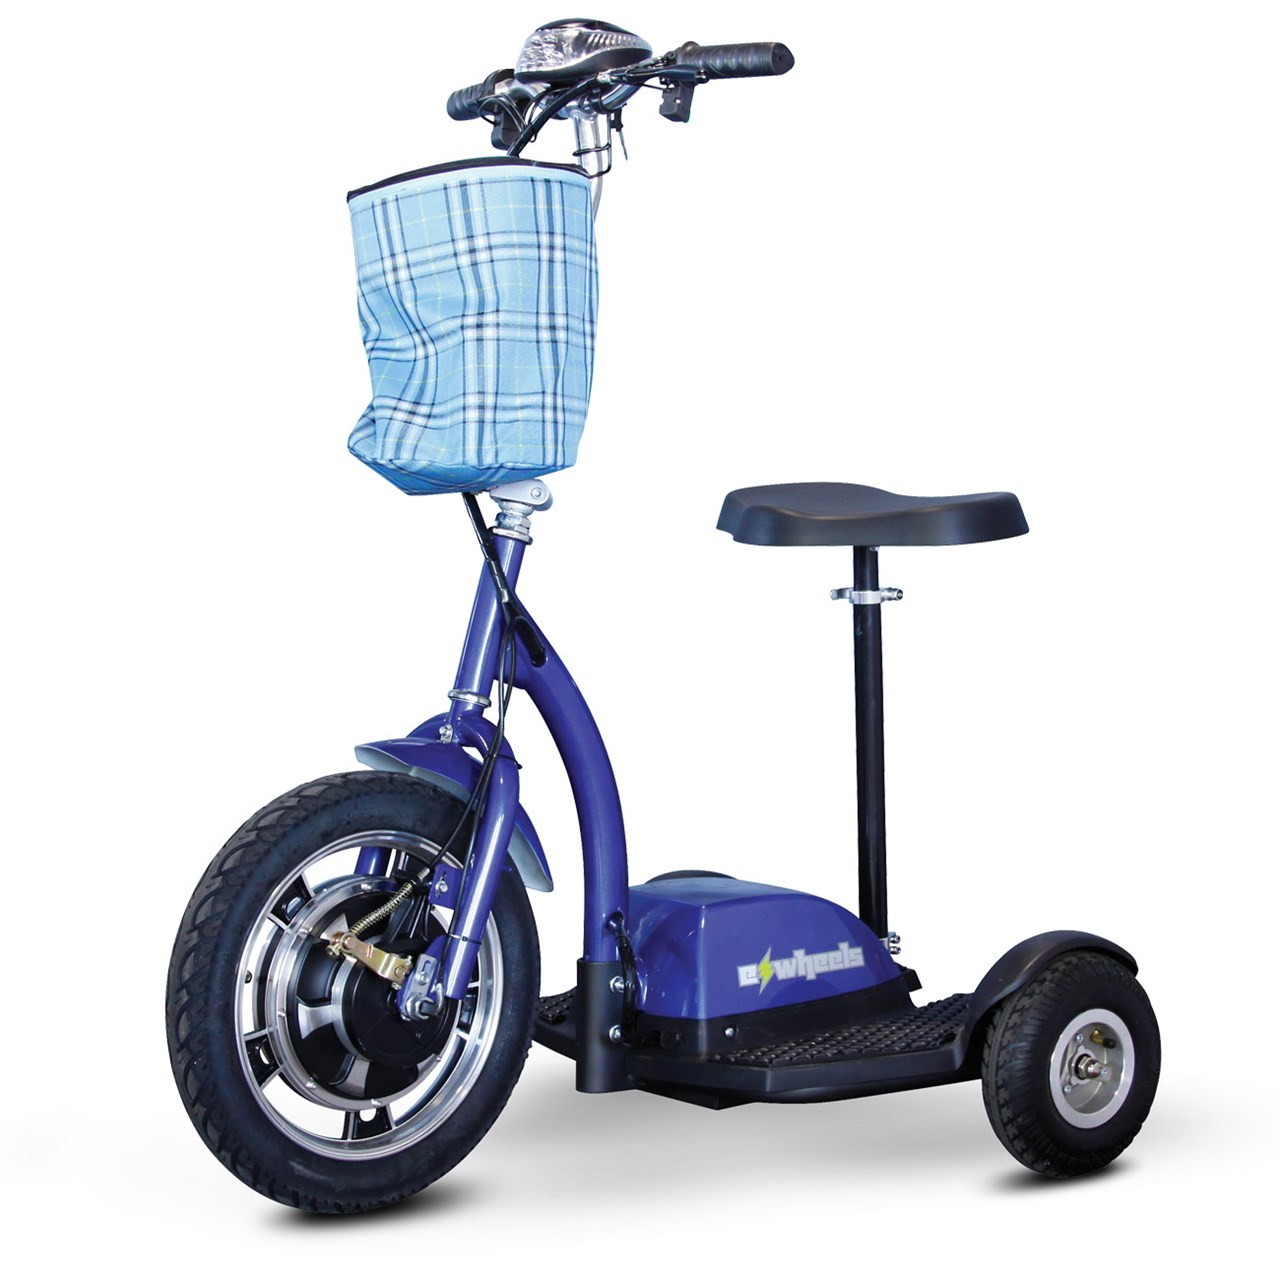 Maxiaids E Wheels Ew 18 Stand N Ride 3 Wheel Electric Mobility Scooter Blue